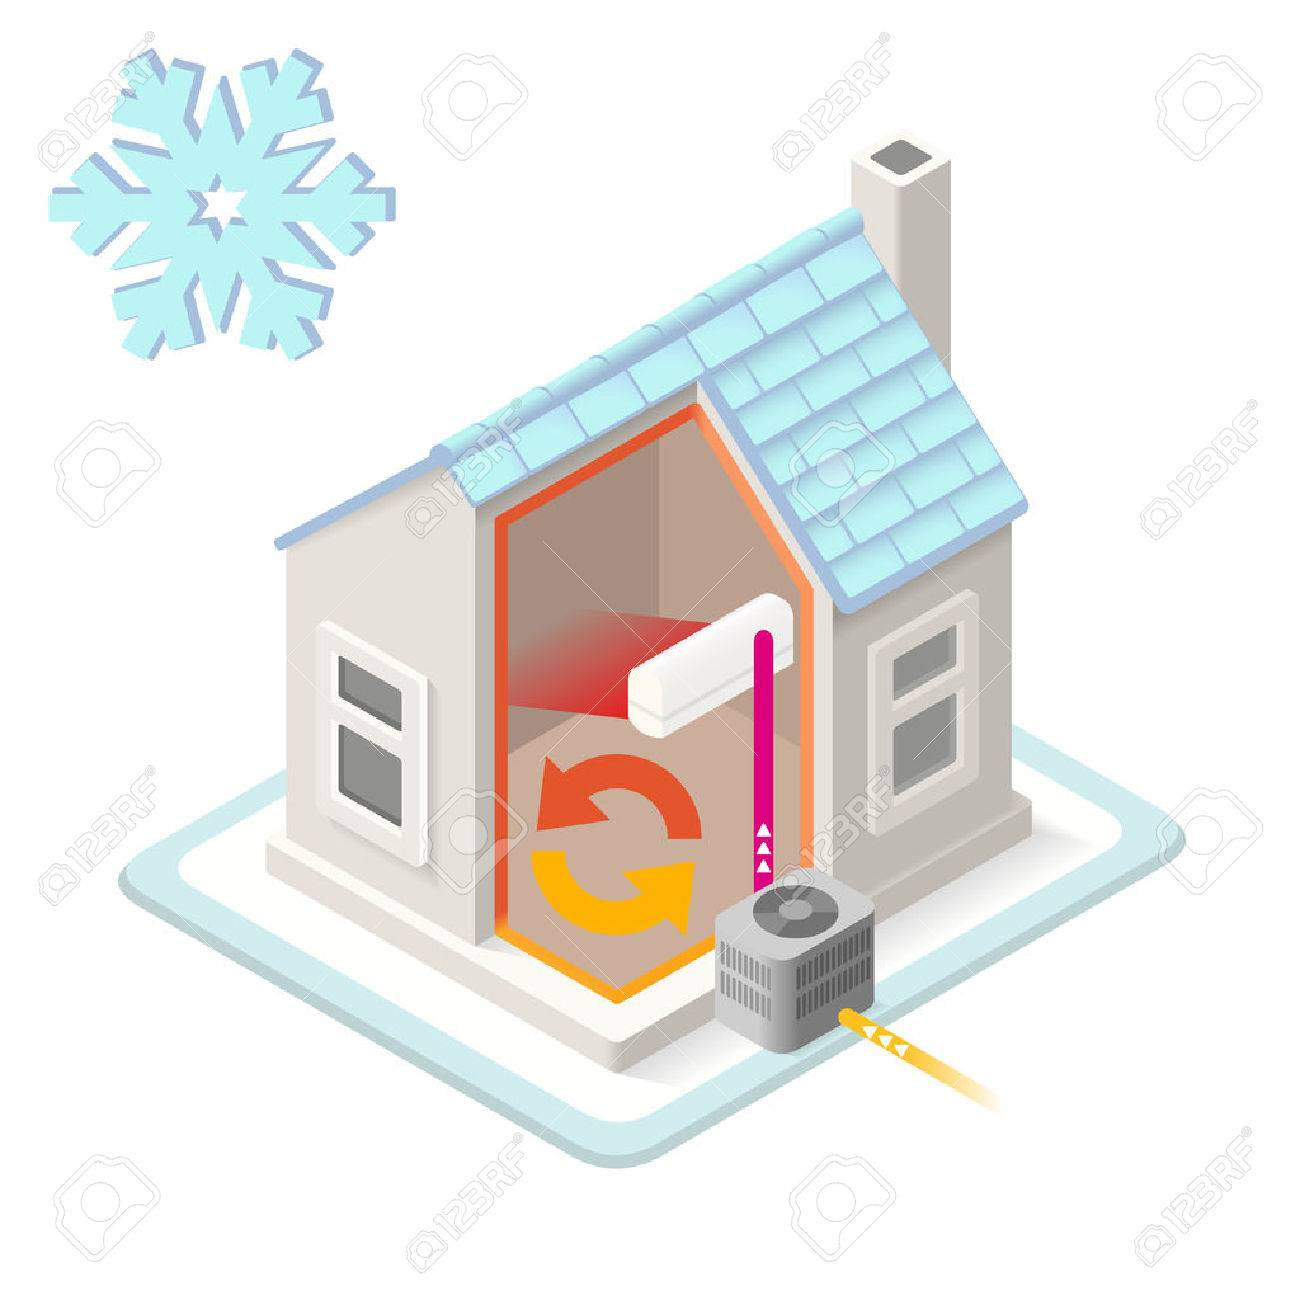 Heat Pump House Heating System Infographic Icon Concept. Isometric 3d  Soften Colors Elements. Air